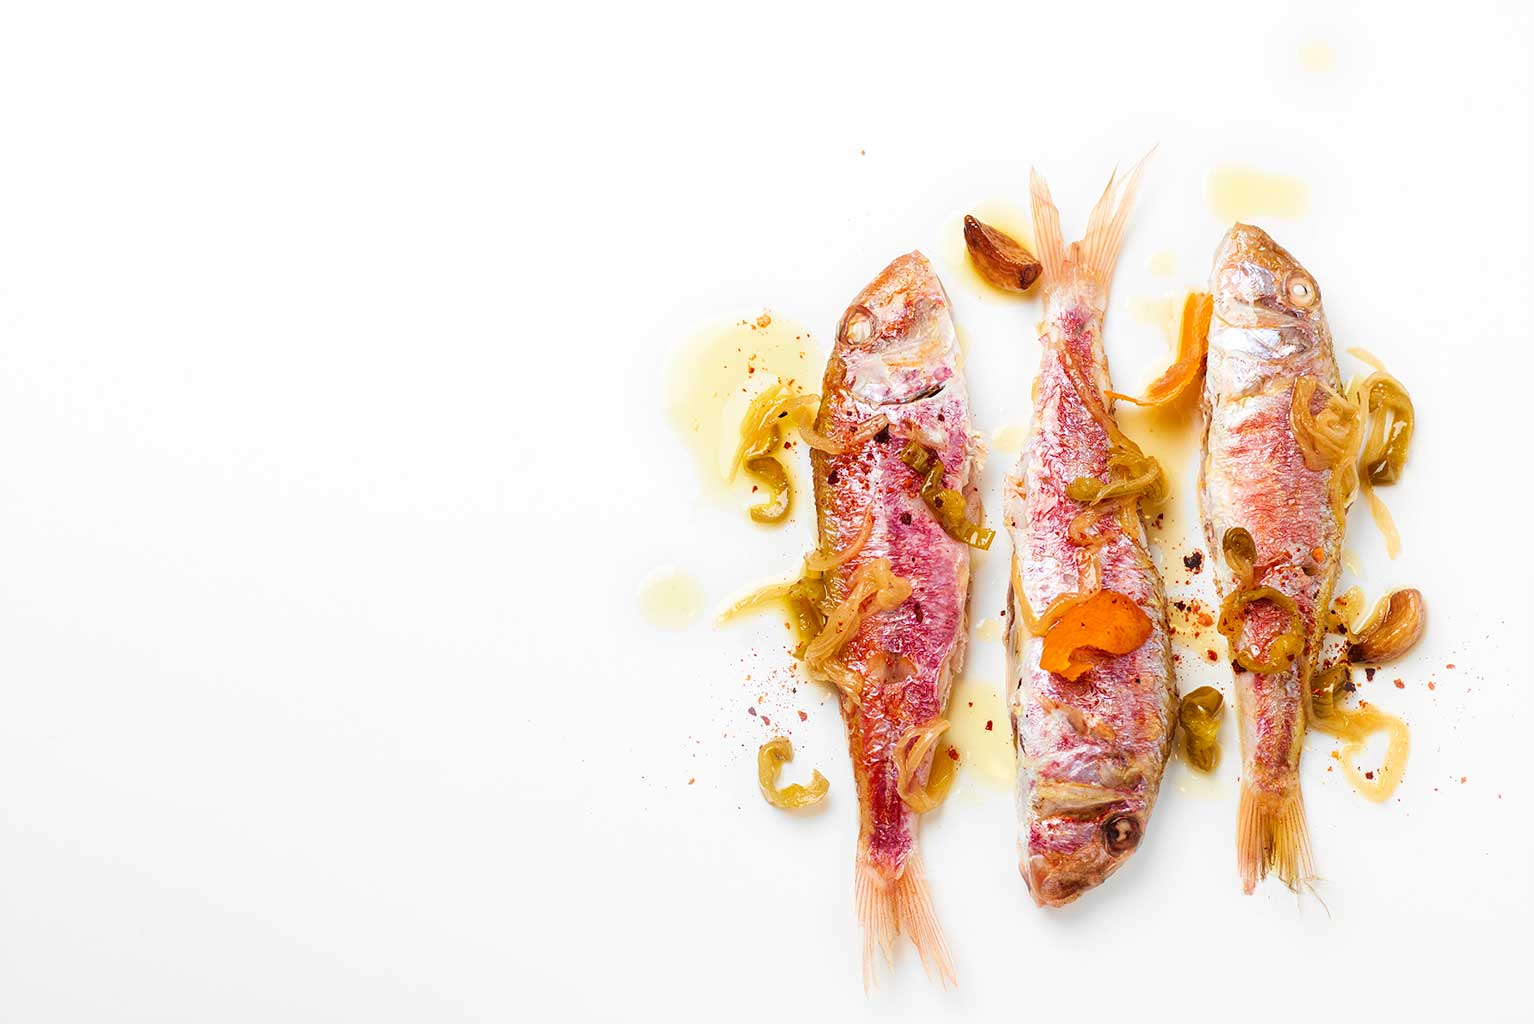 forfood-lekue-bodegon-food-photography-salmonetes